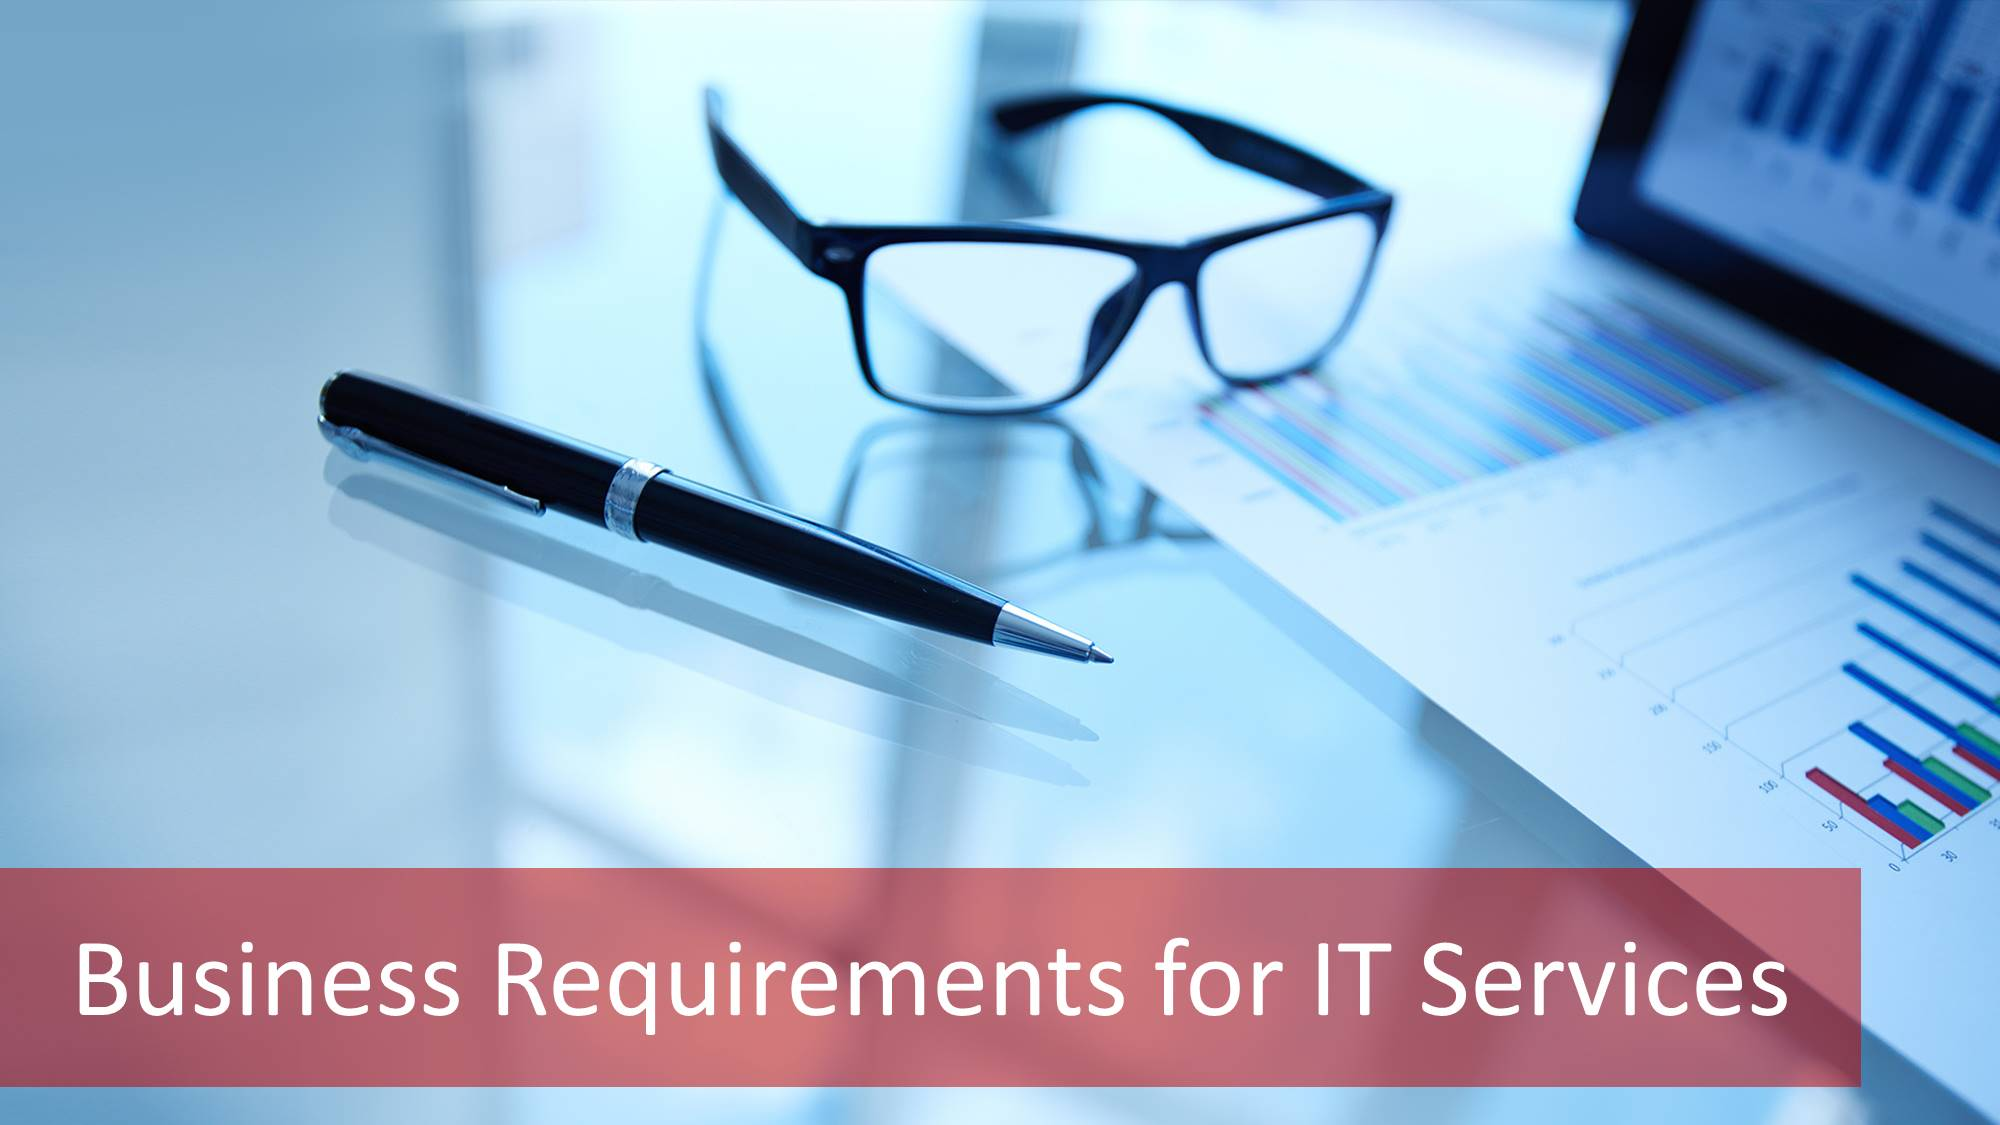 Business-requirements-1 The Business Requirements of IT services: All You Need to Know